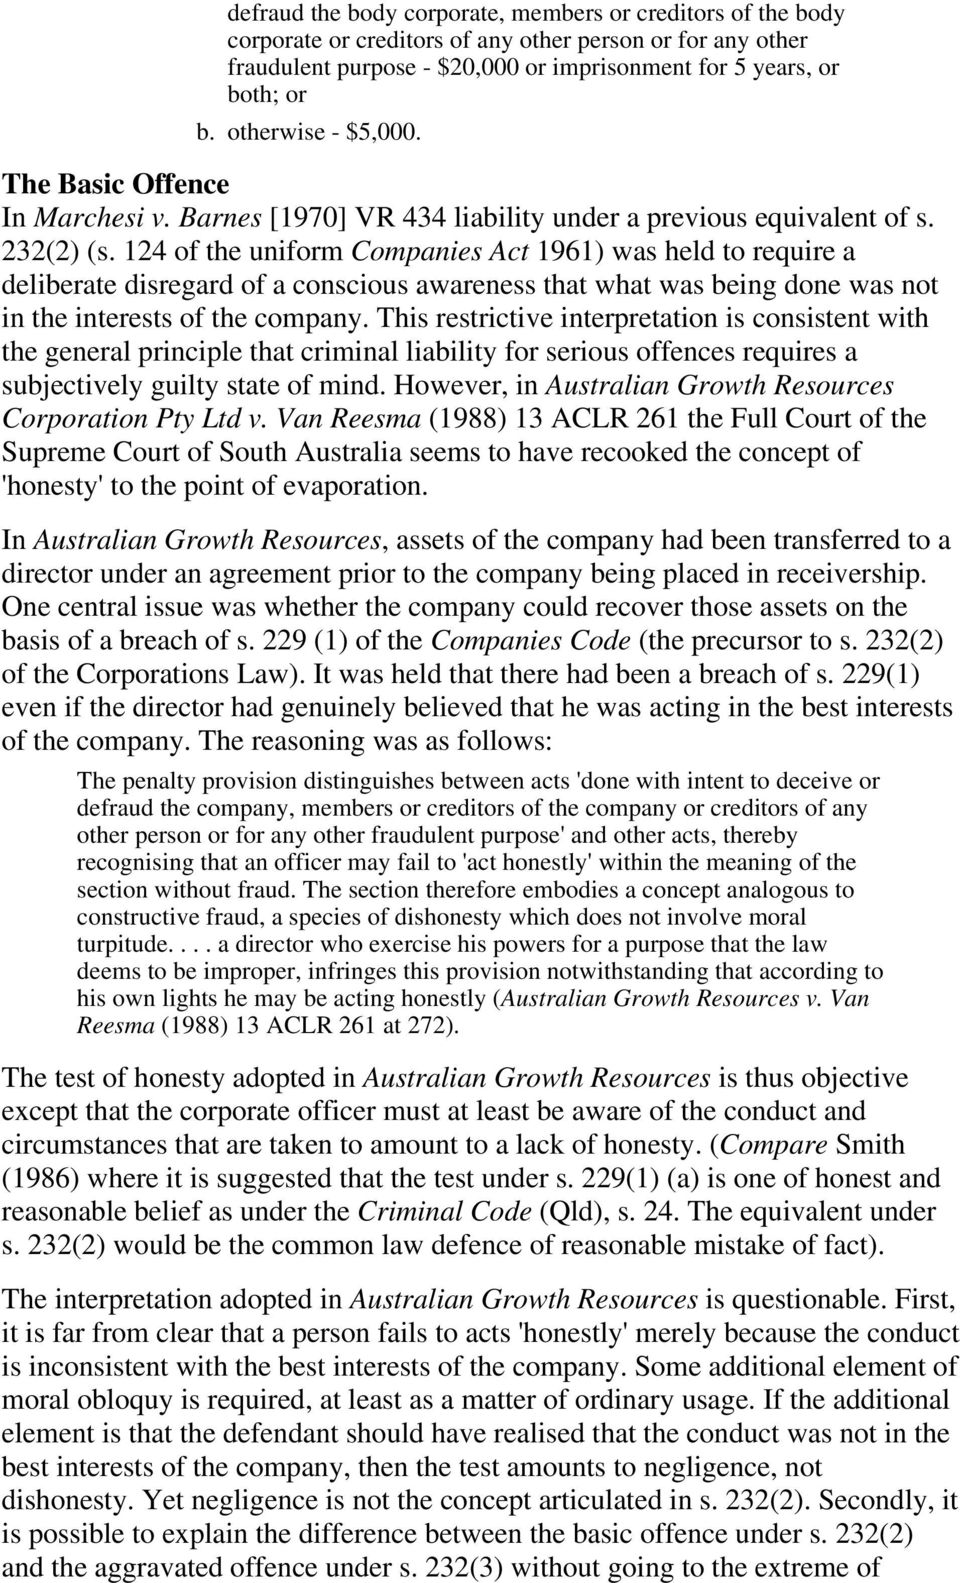 124 of the uniform Companies Act 1961) was held to require a deliberate disregard of a conscious awareness that what was being done was not in the interests of the company.